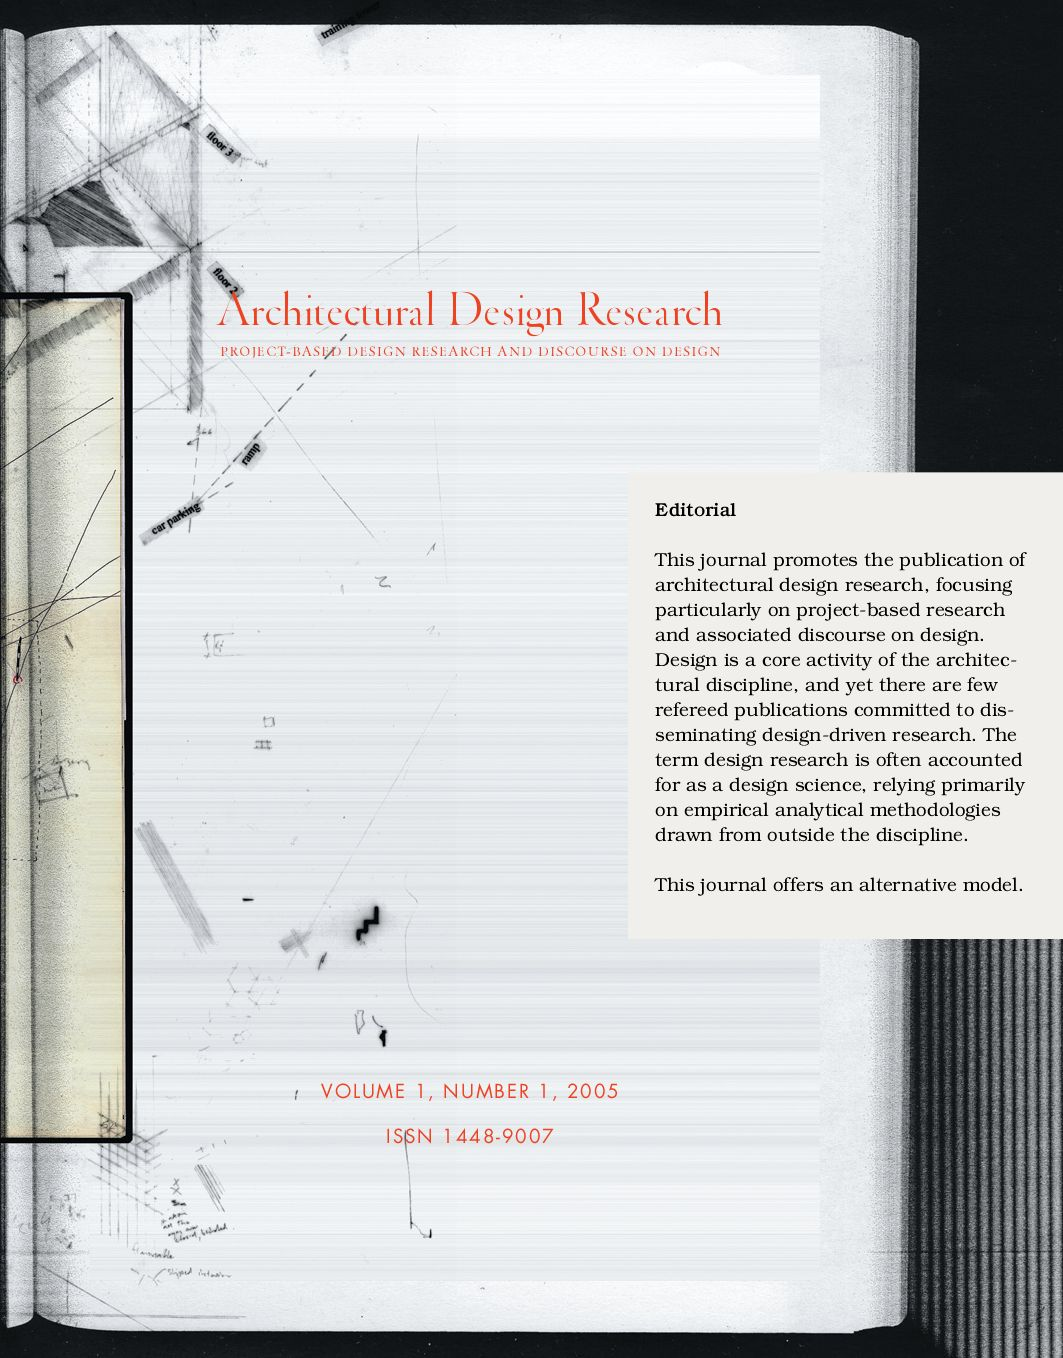 architectural design research vol 1 no 1 by brent